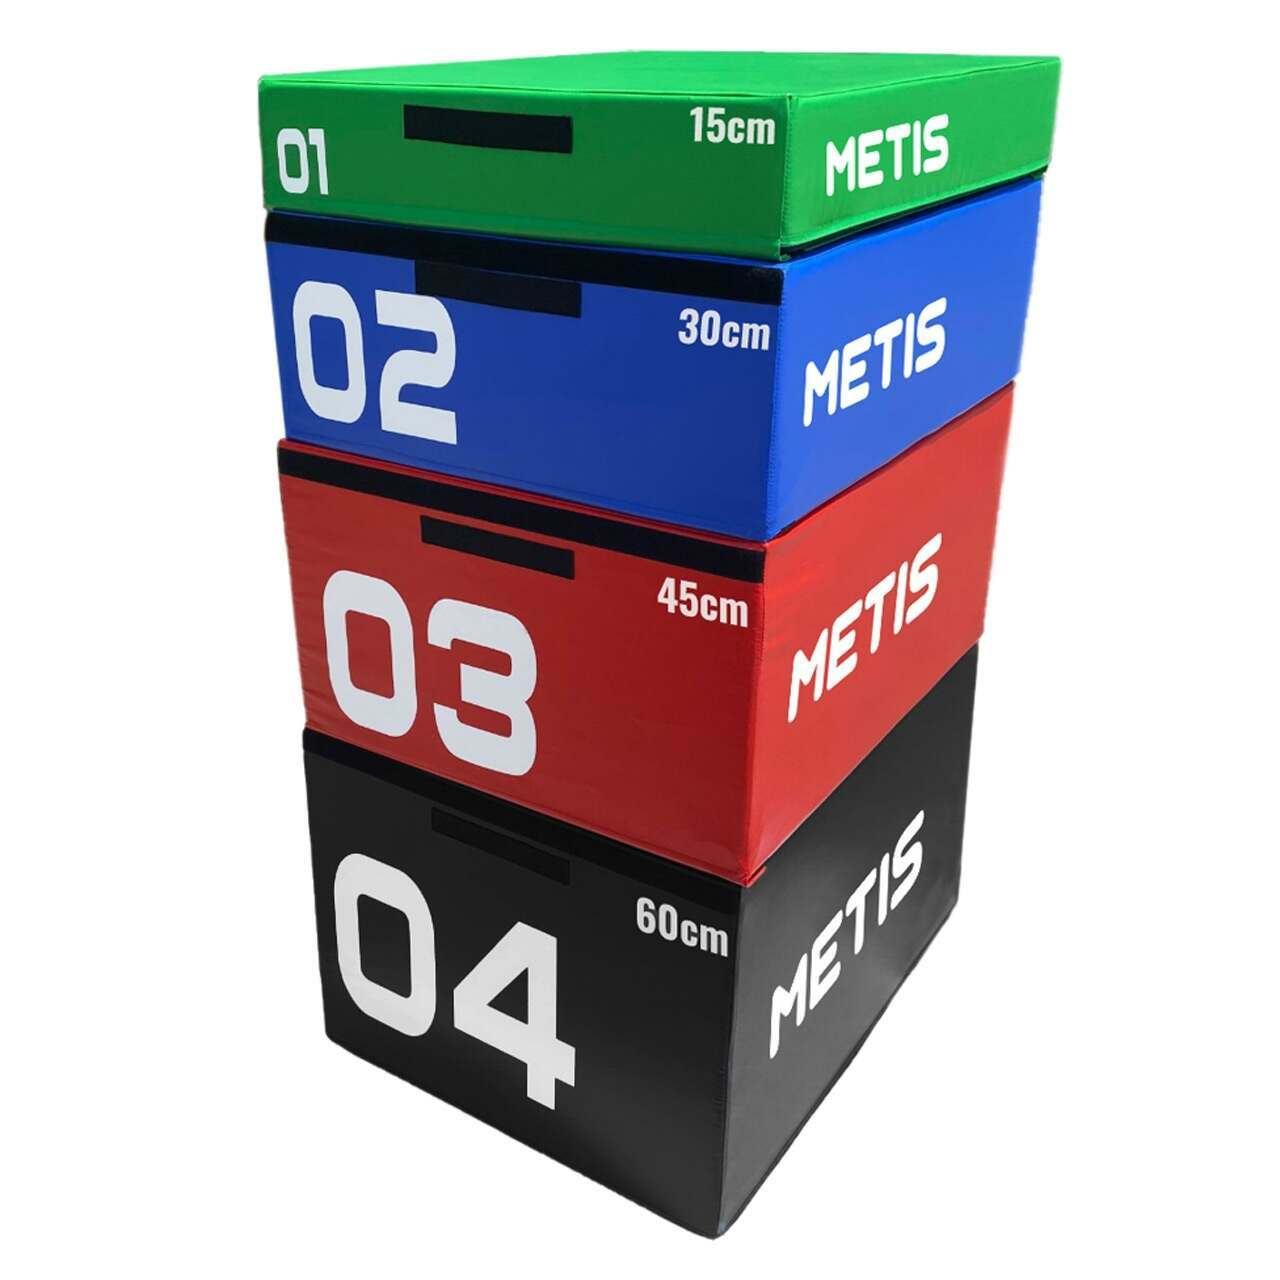 METIS Soft Foam Plyometric Jump Box Sets